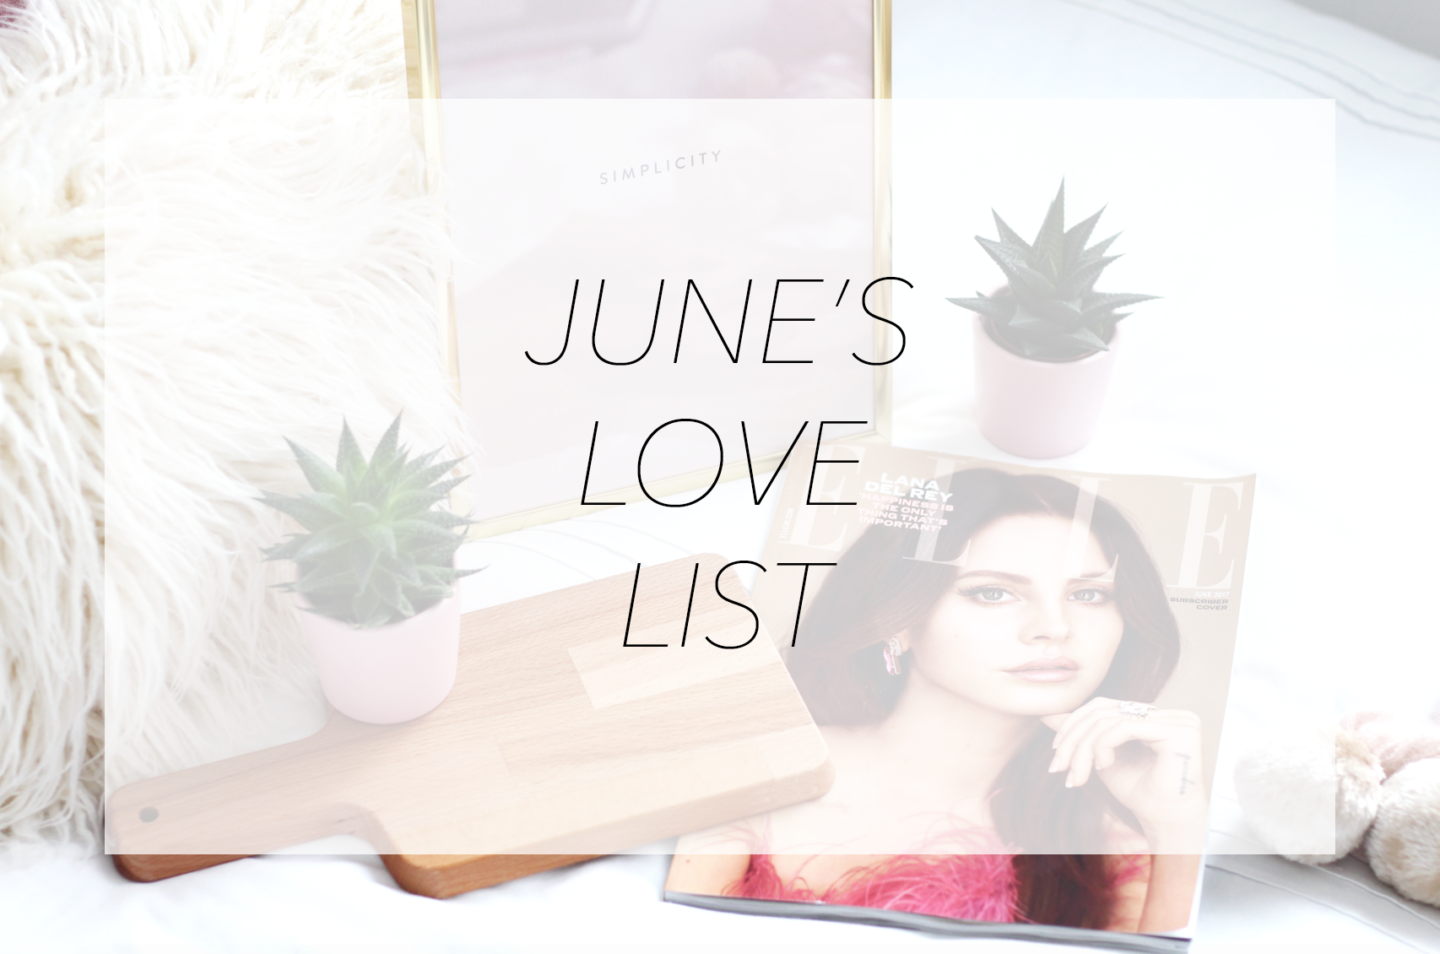 JUNE'S LOVE LIST